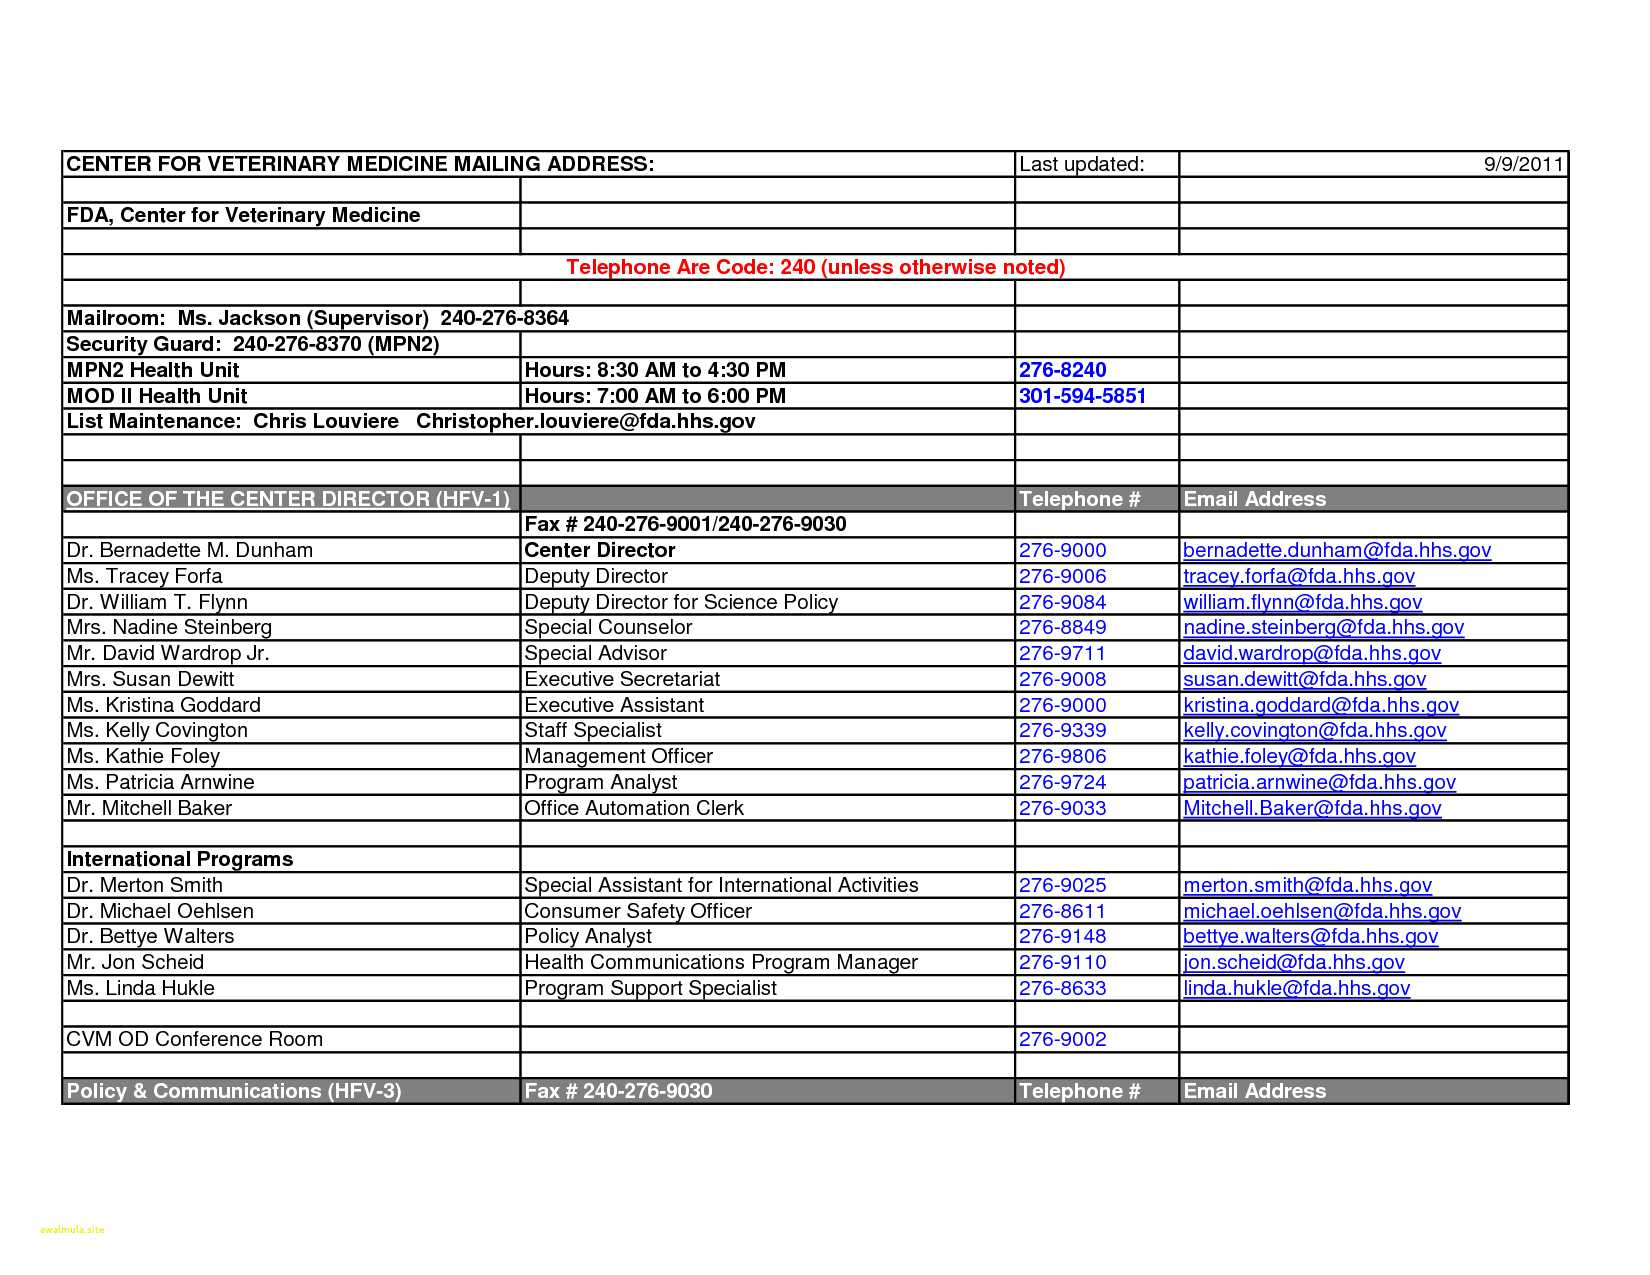 Equipment Inventory Spreadsheet Within Excel Spreadsheet Examples Download Along With Equipment Inventory